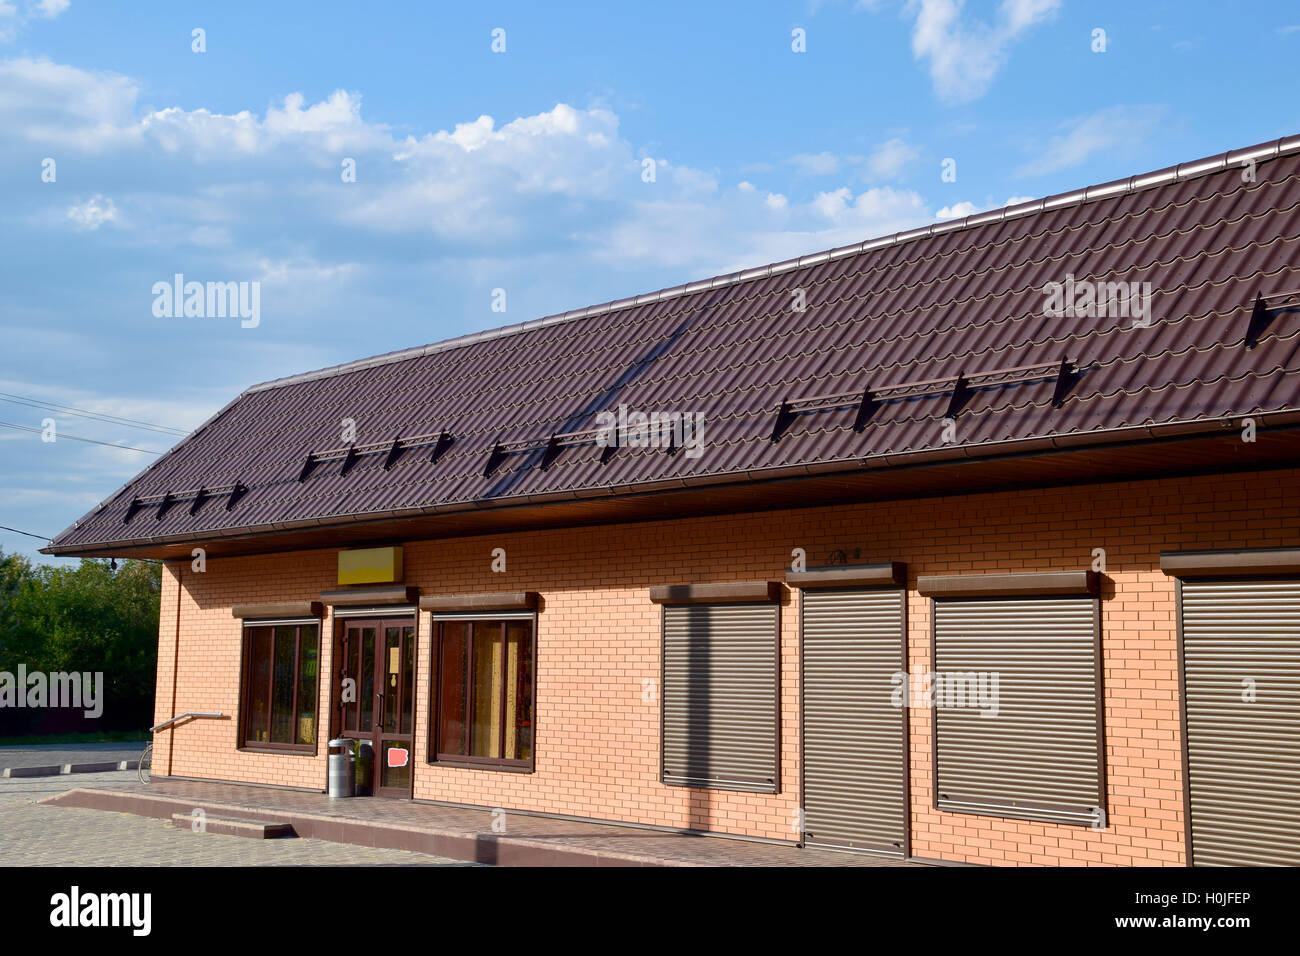 Stock Photo   The Roof Of Corrugated Sheet On A Building. Brown Roofing  Metal Sheets On Rented Store. Brown Shutters On The Windows